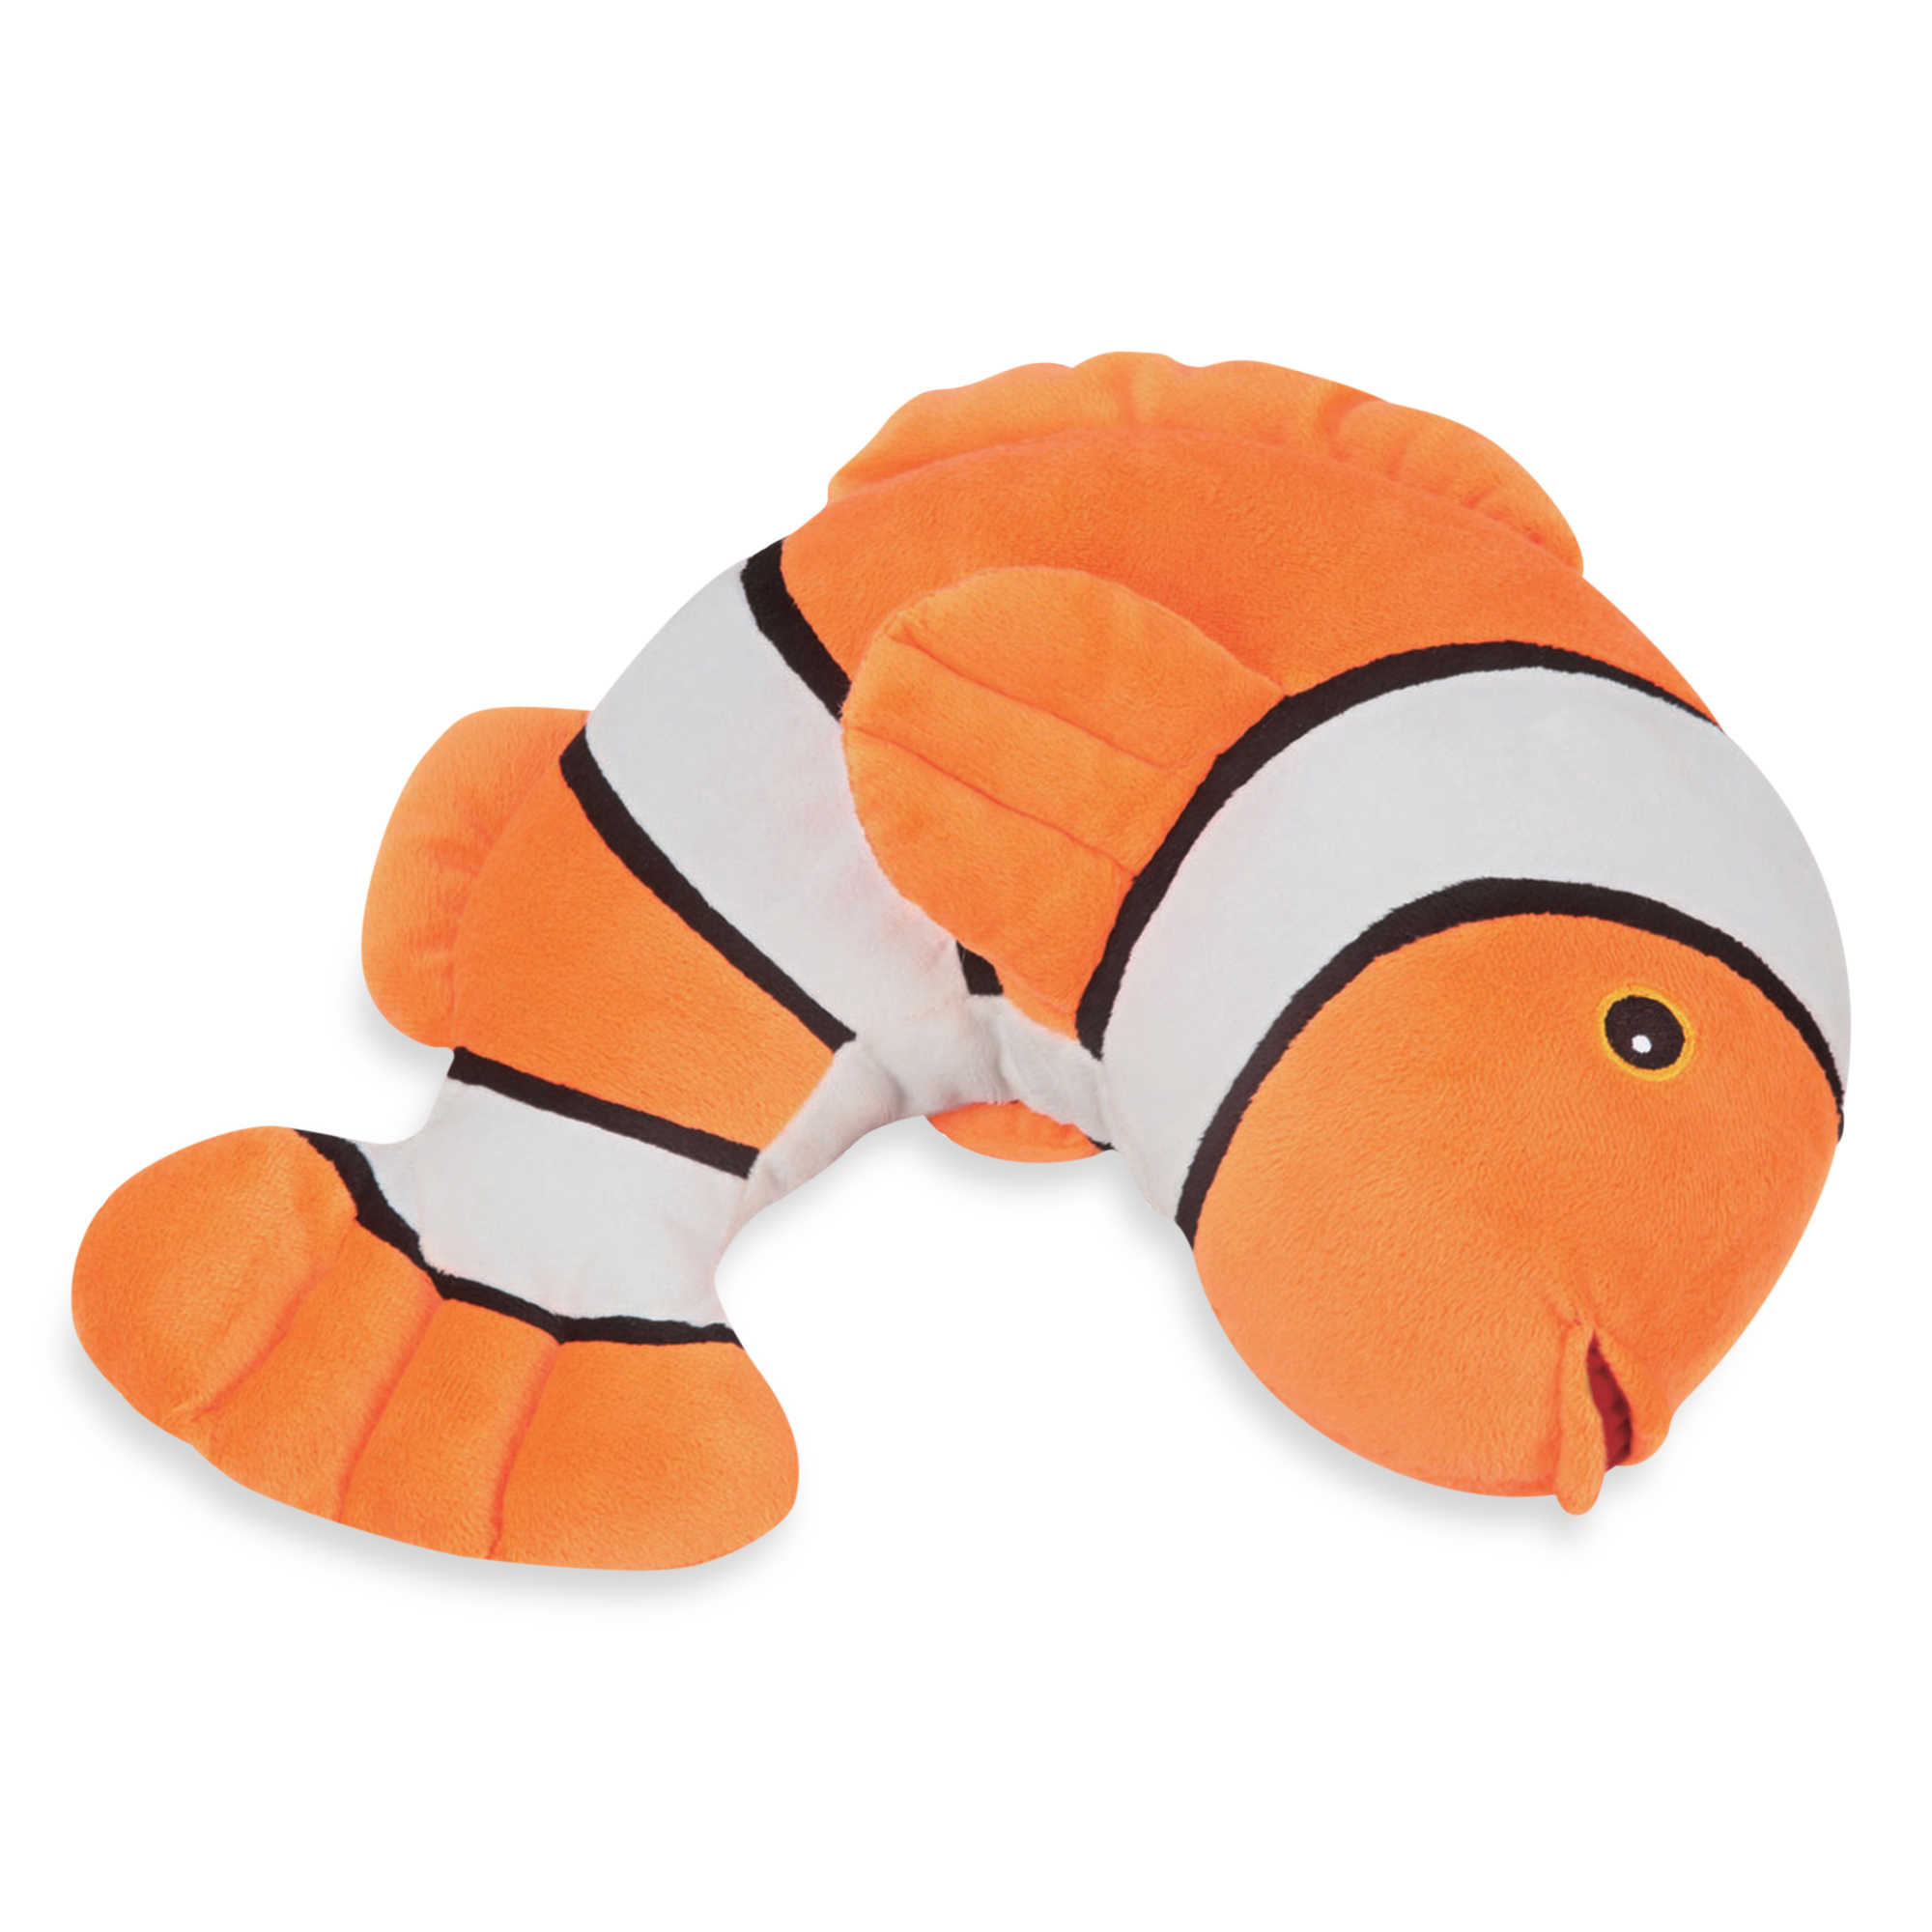 Animal Travel Pillow : Travel With Kids Pet Travel Pillow - Clown Fish